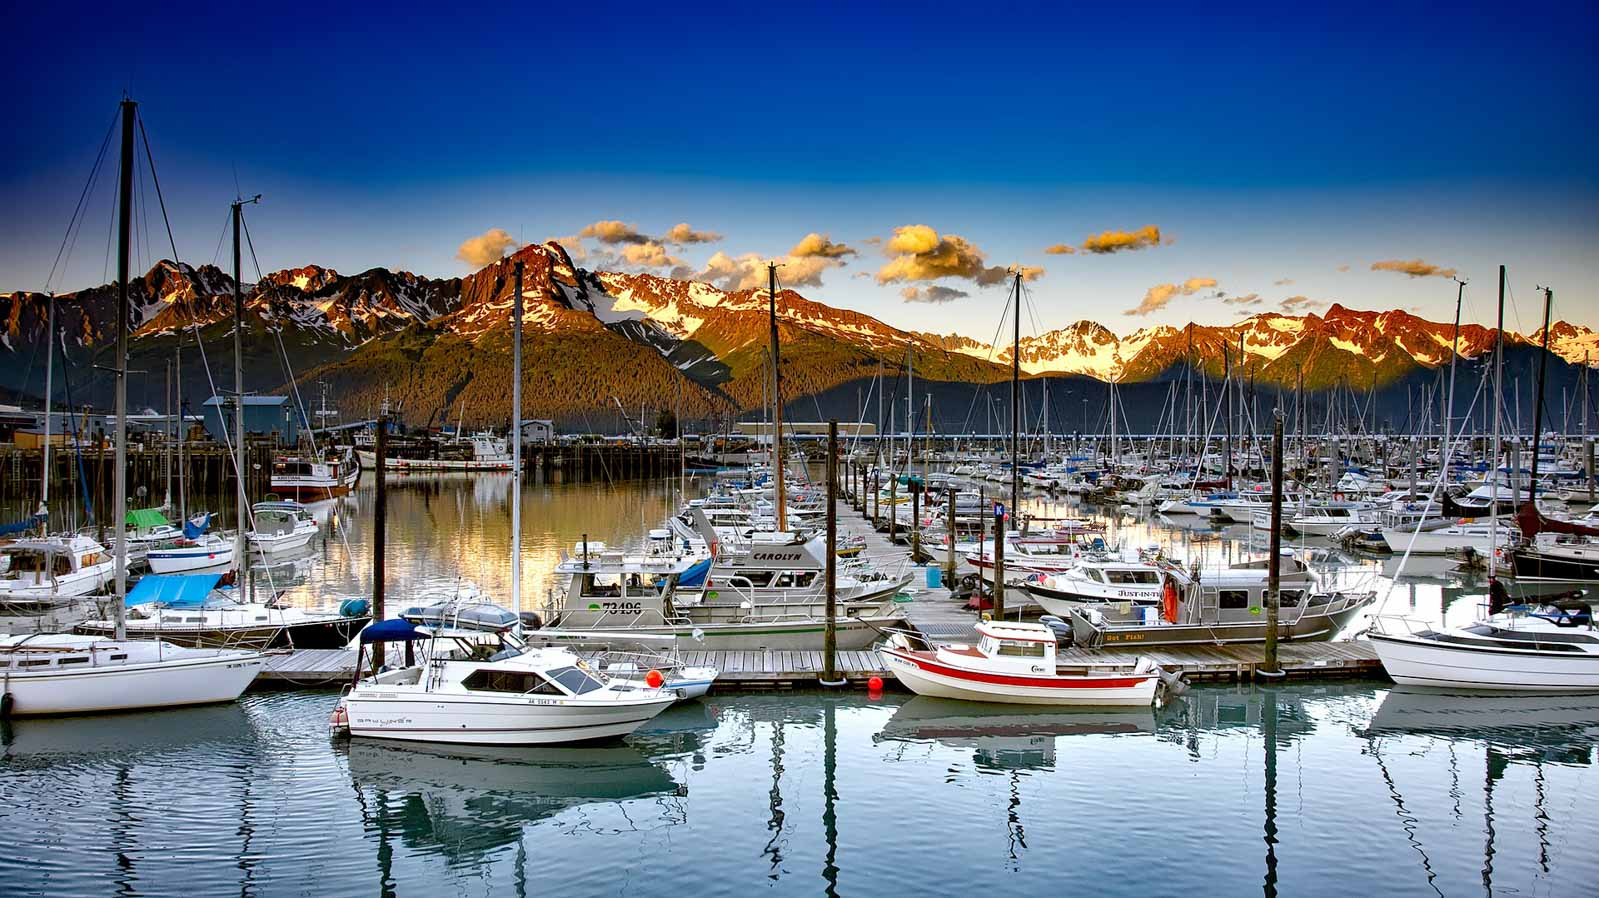 Alaska, The Great Land: Round-trip Sightseeing Tour from Anchorage - Seward